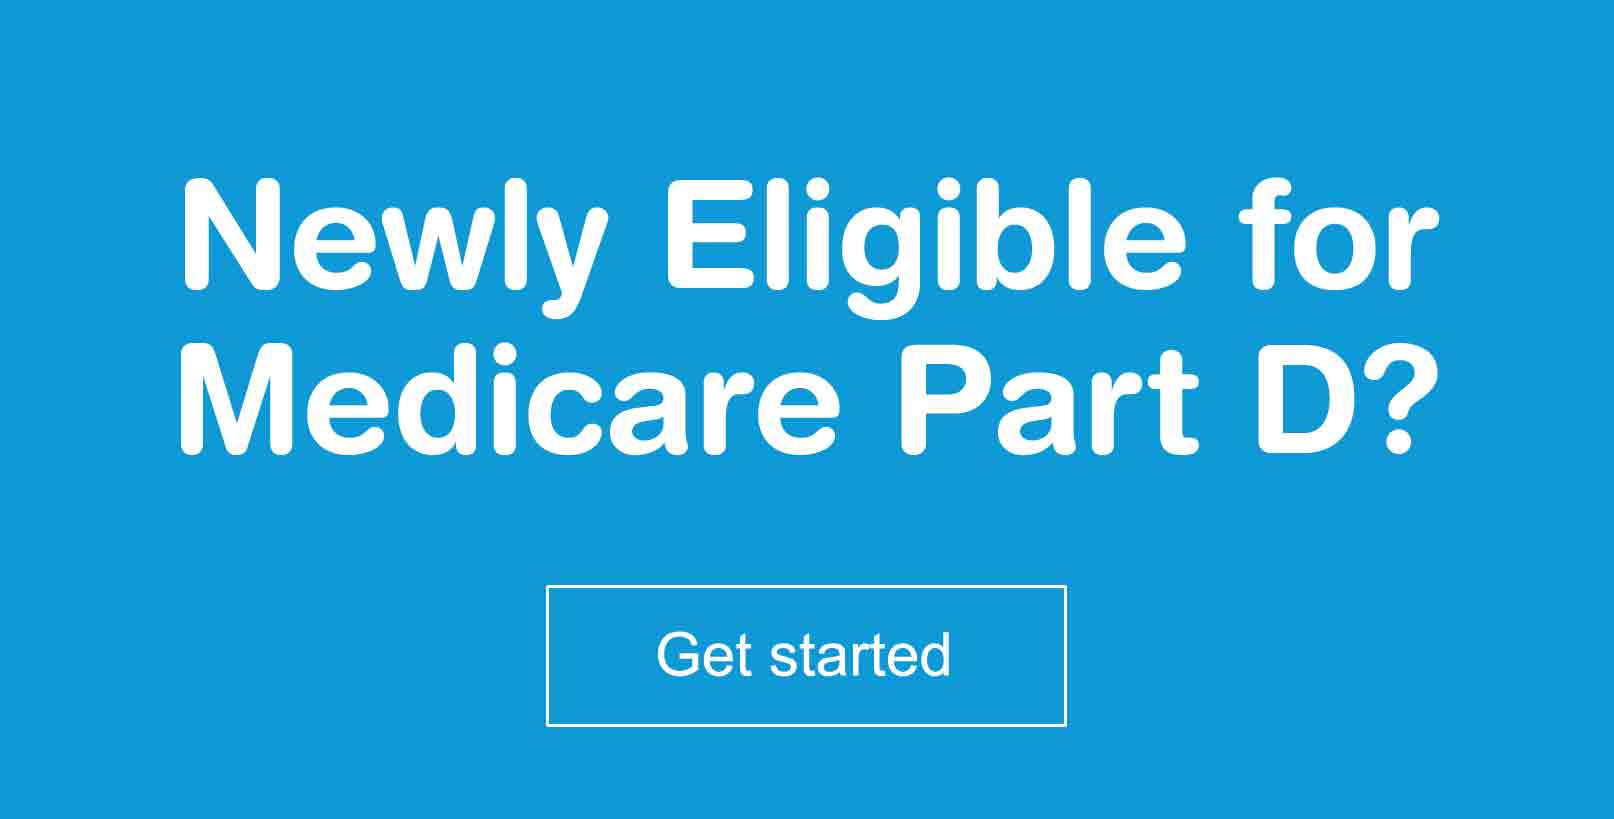 Newly Eligible for Medicare Part D? Get started